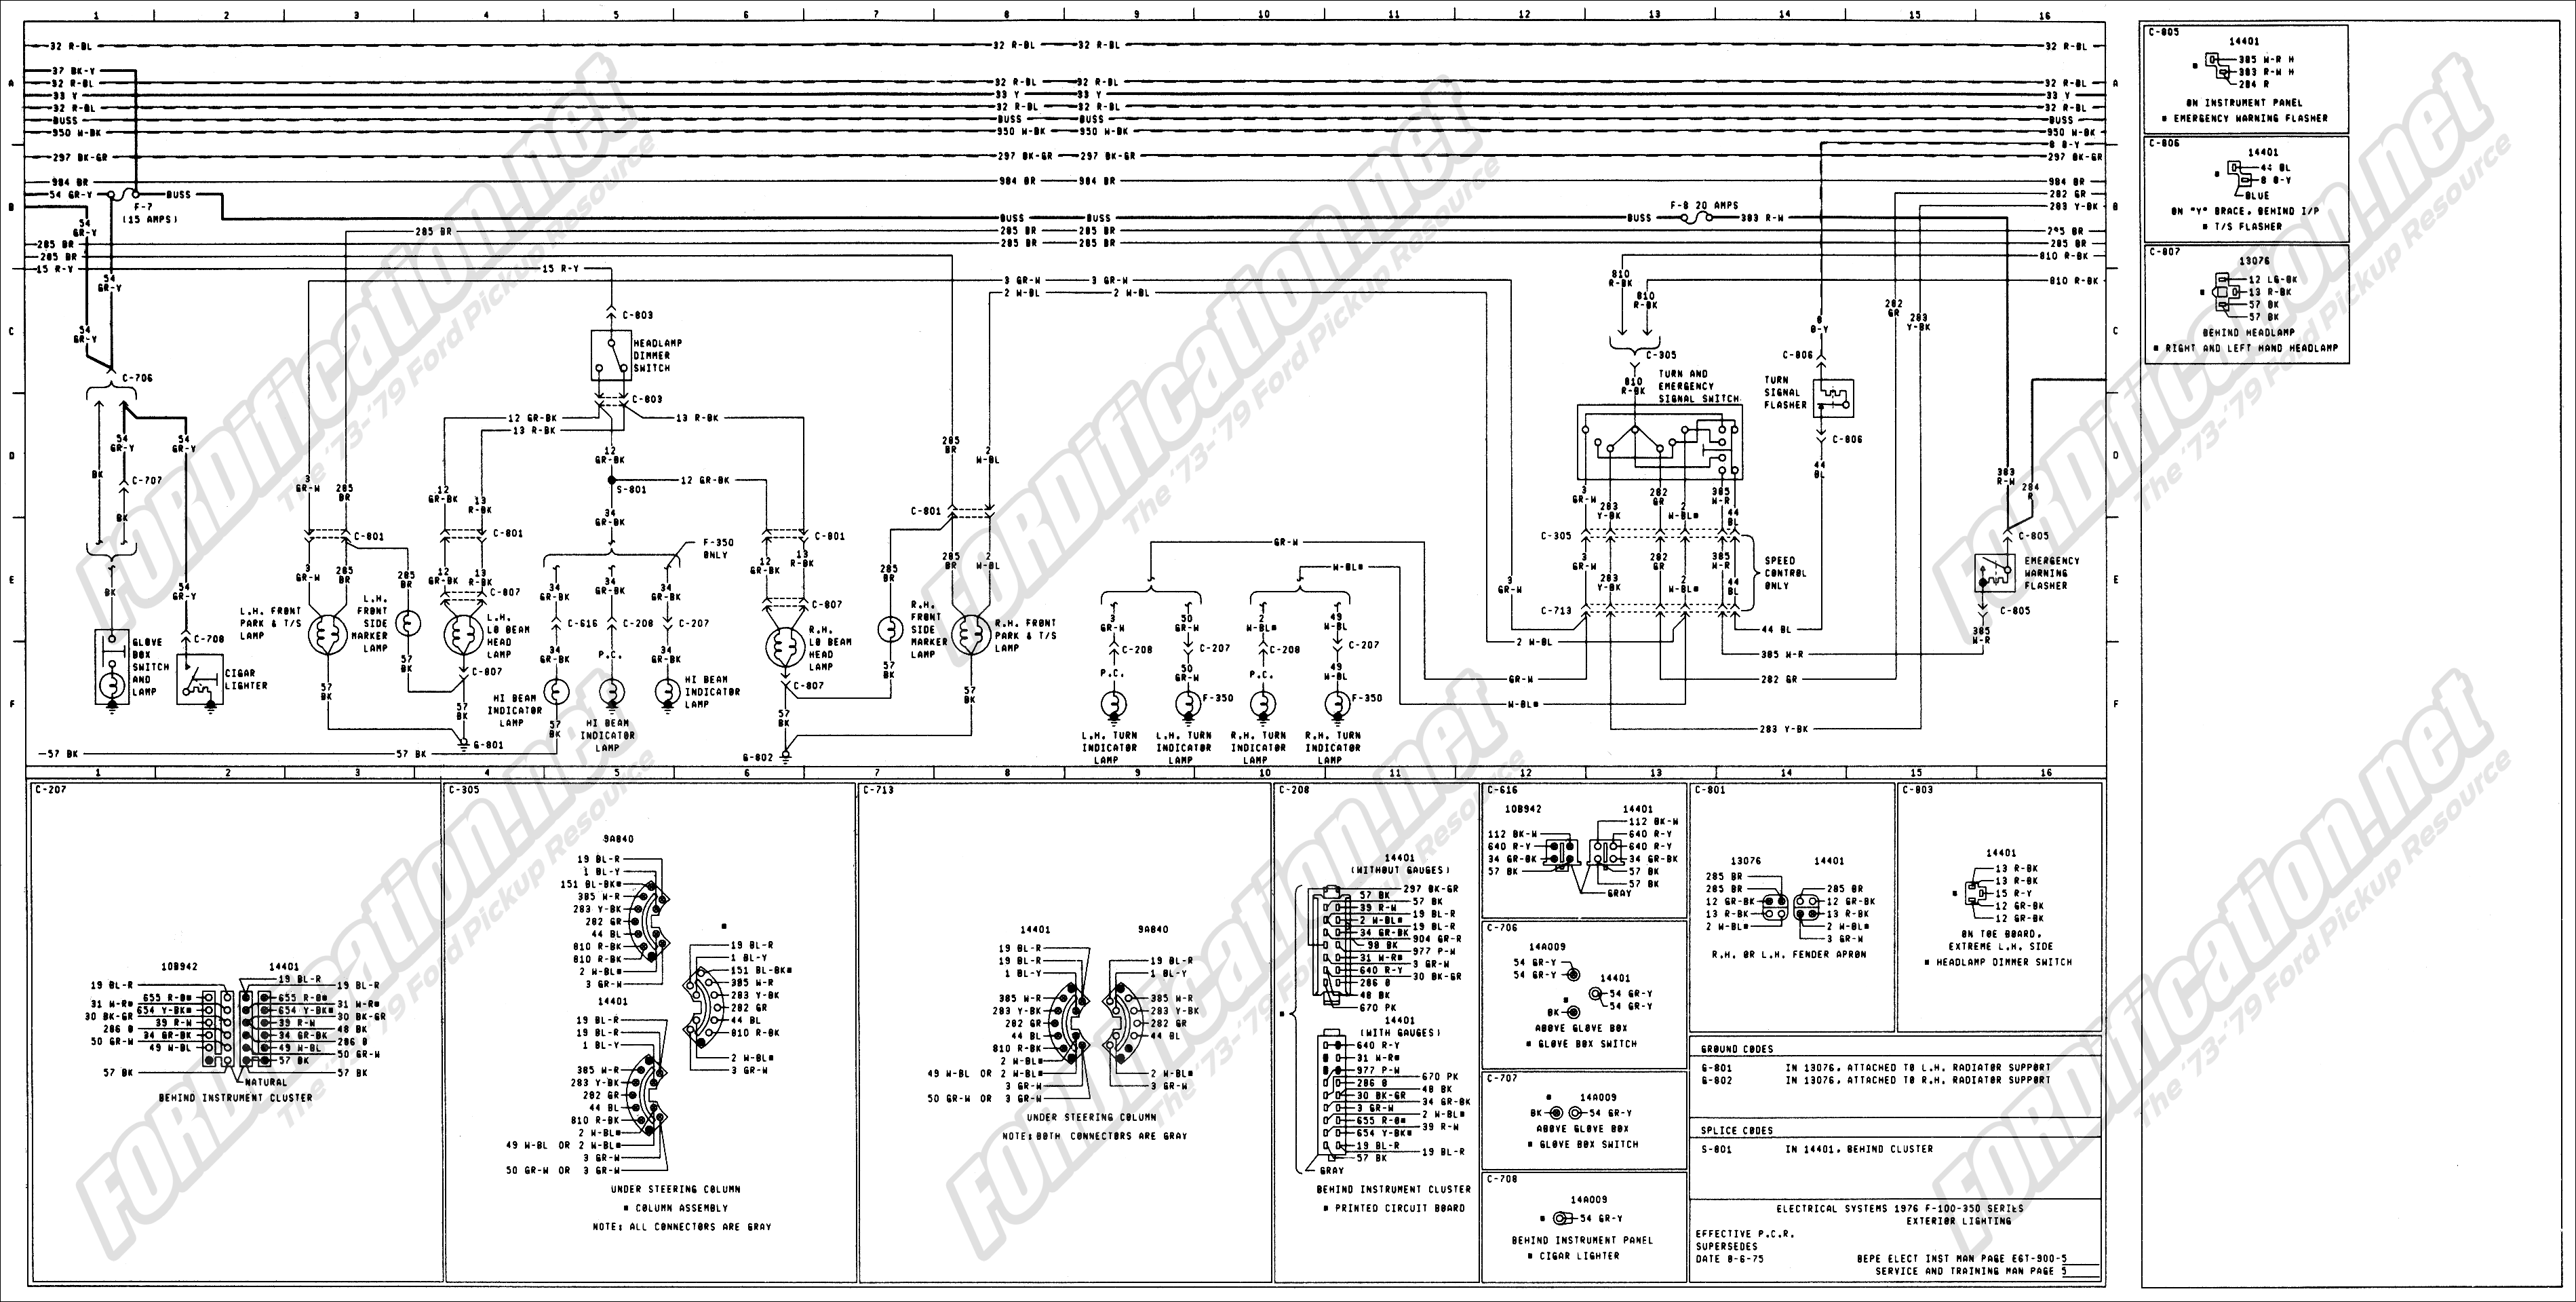 76 ford f100 wiring diagram wire center u2022 rh abetter pw